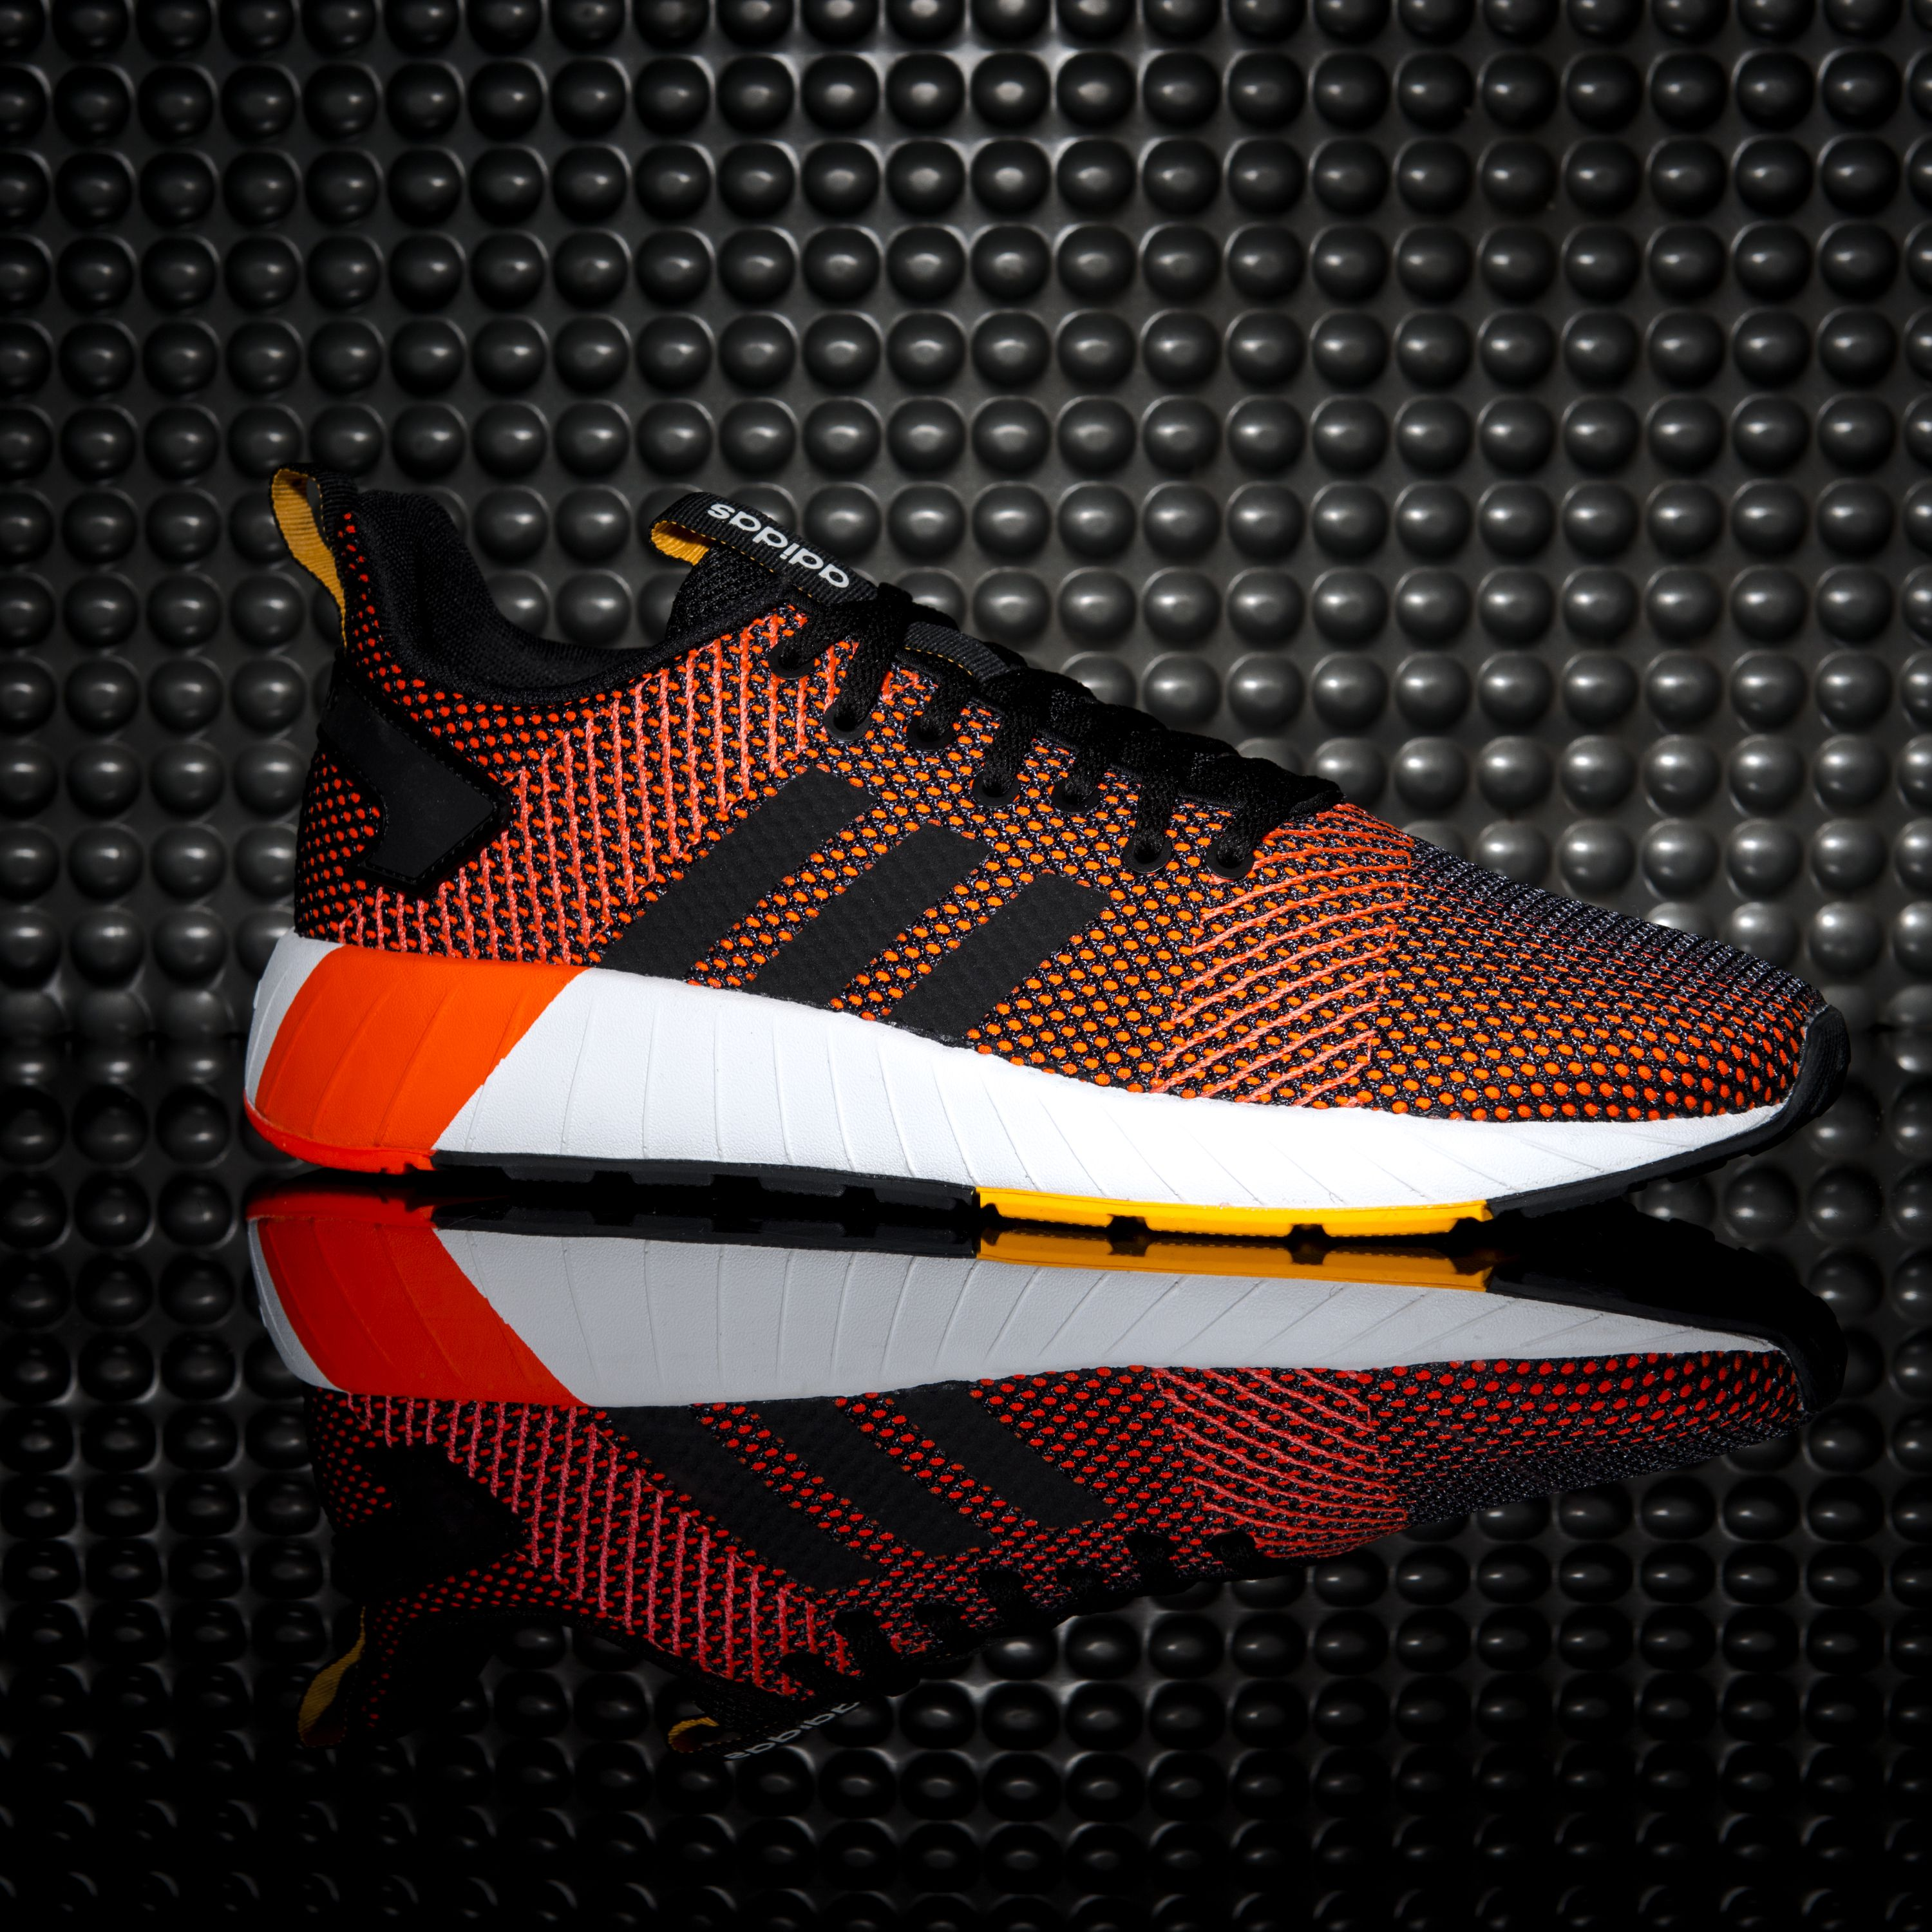 462947fce559 Make your mark with the adidas Questar trainers.